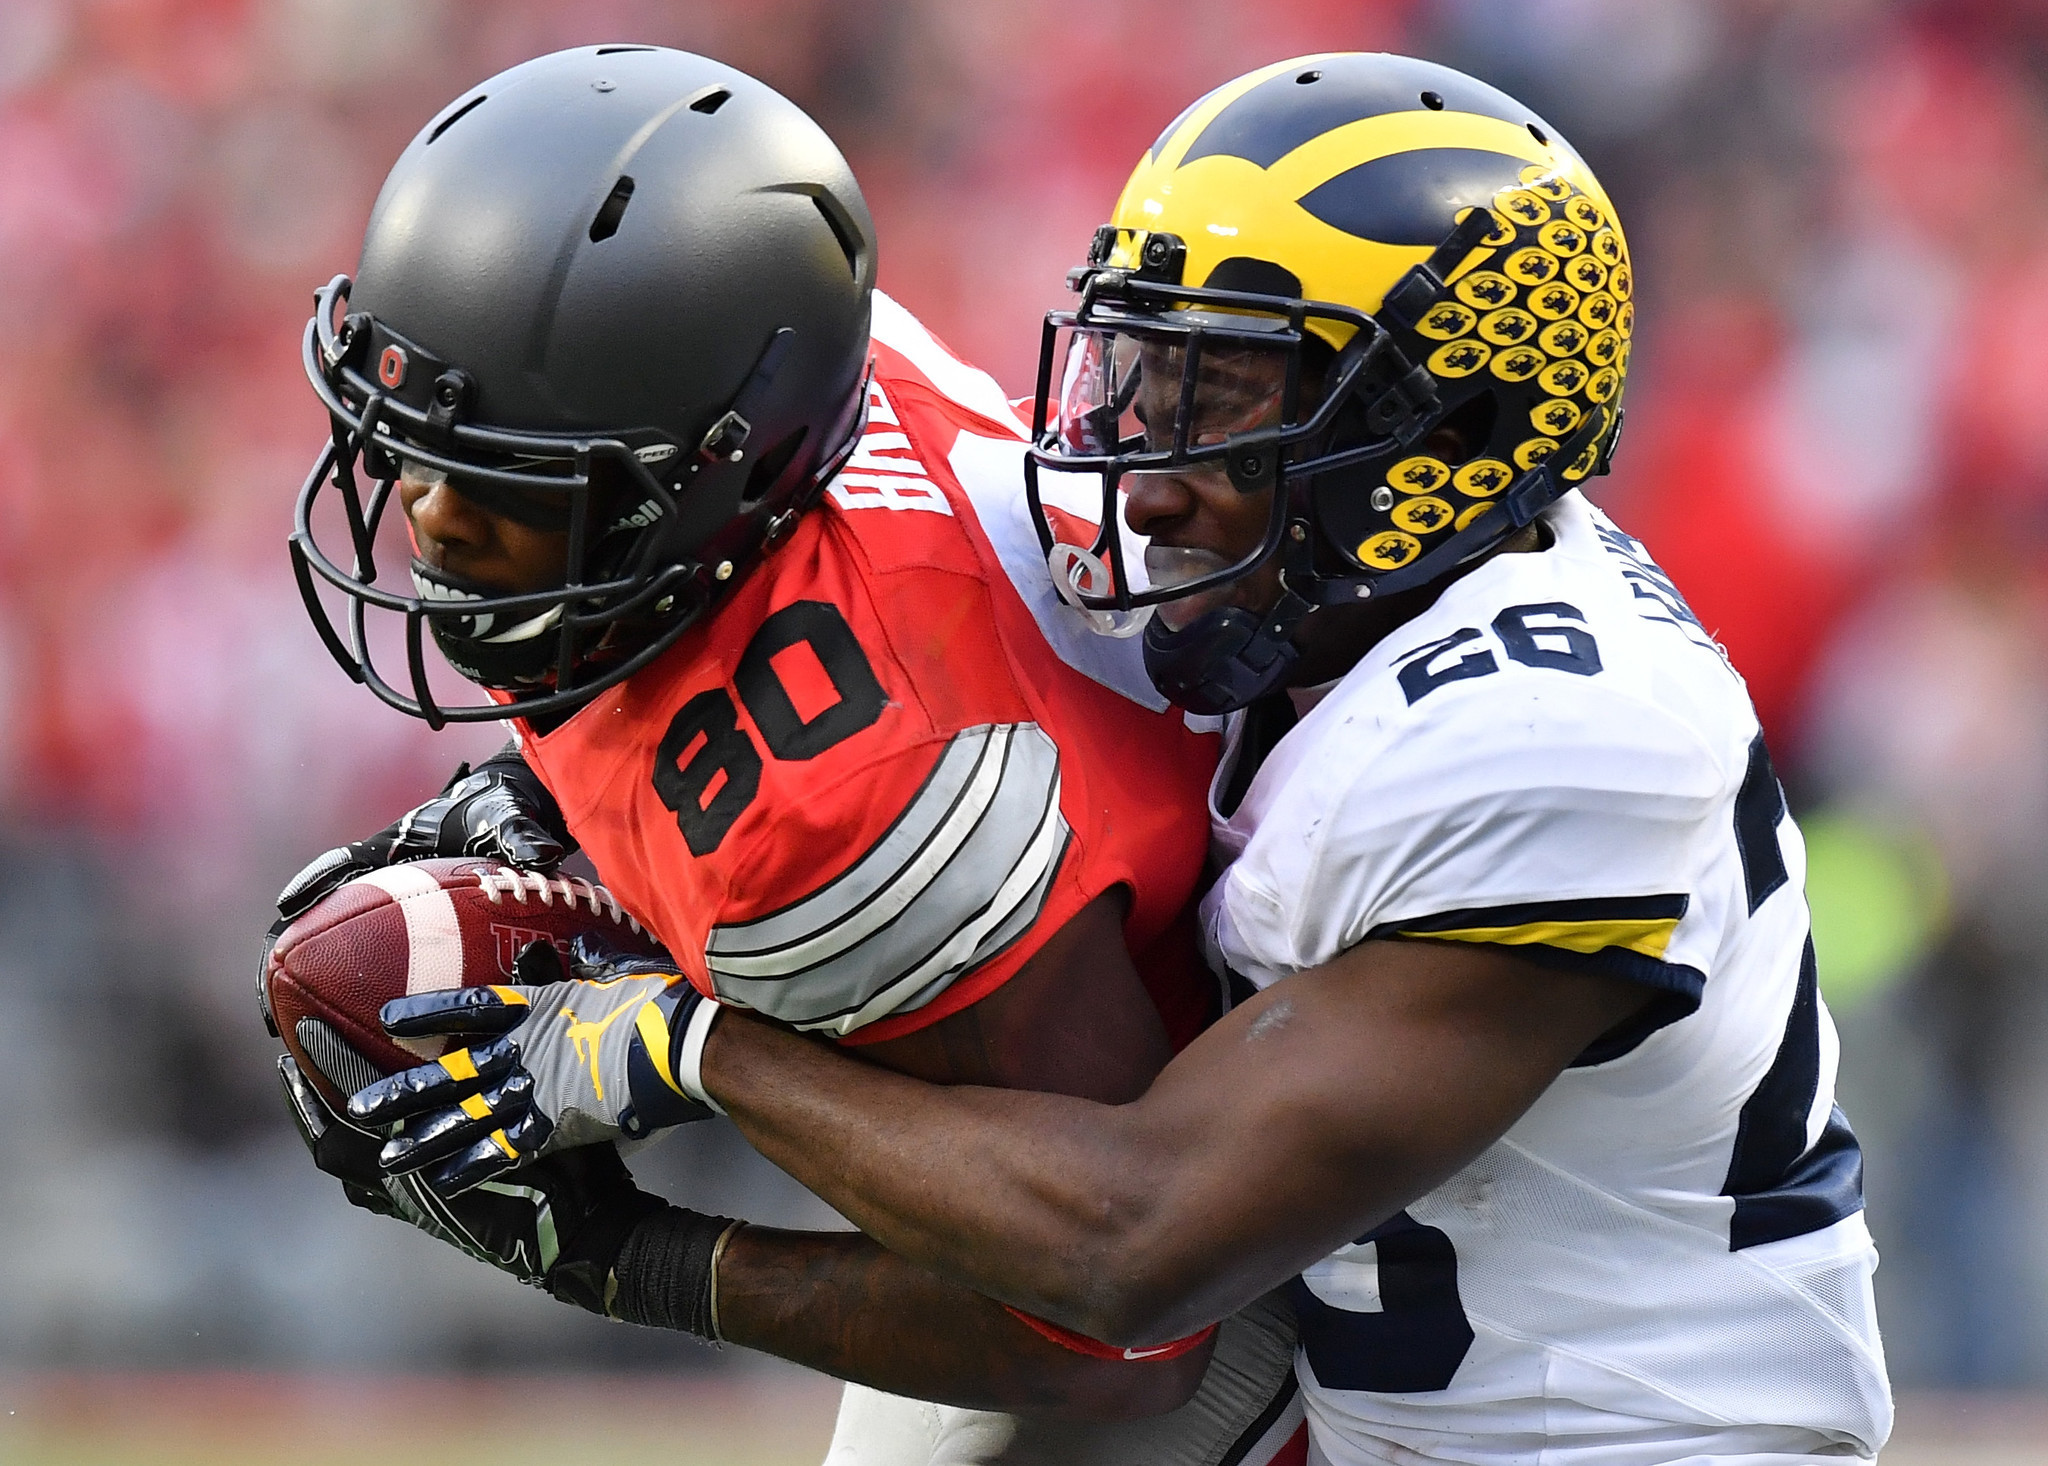 Ct-michigan-offers-support-for-ohio-state-20161129